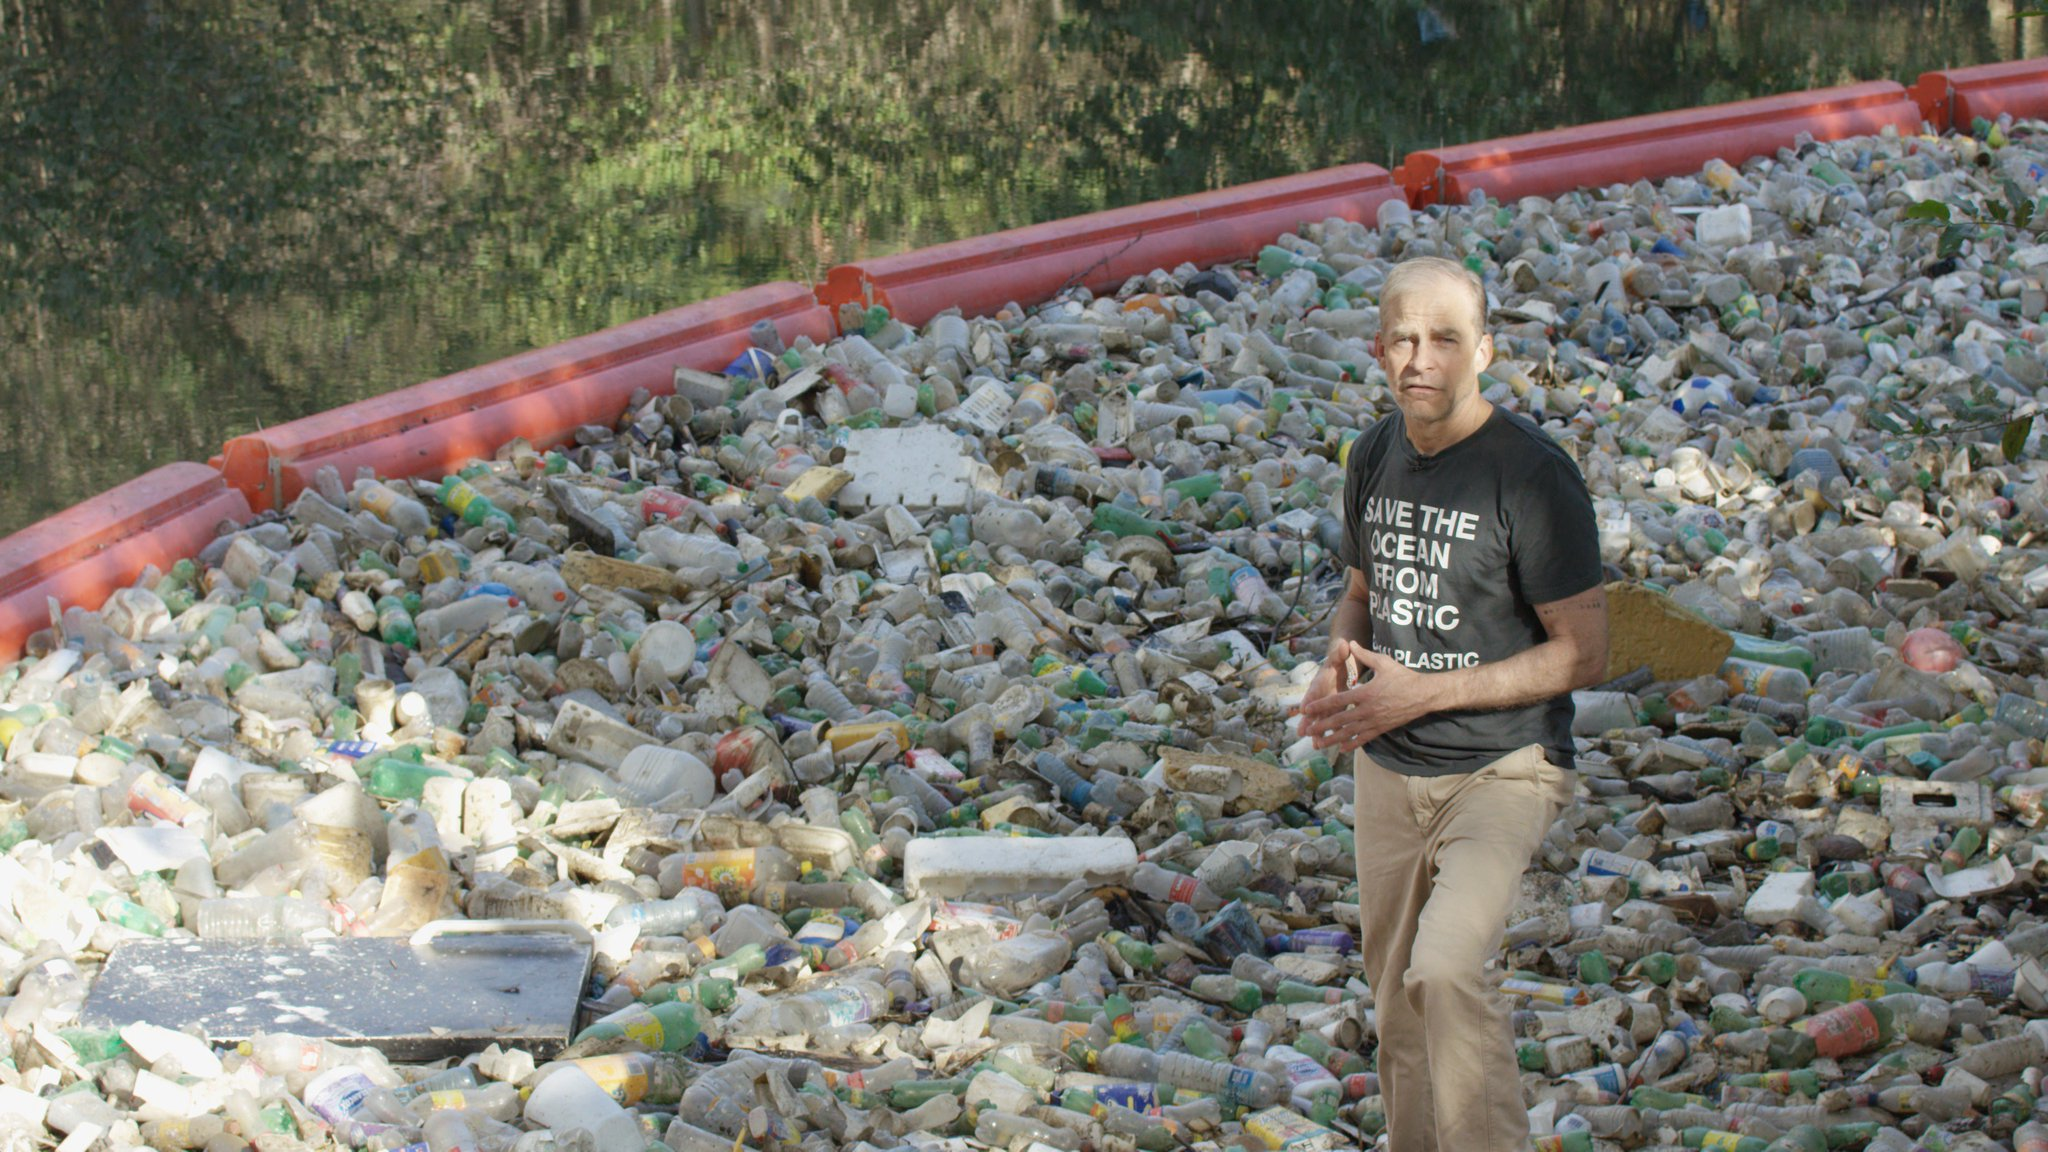 Stopping #oceanplastic starts with cleaning up plastic in rivers that flow to the sea. This project by @MareaVerde_PA has collected 120,000 bags of waste from a river in just a year! It's a step in the right direction. Our oceans need more innovations like this around the world. https://t.co/XBZcXq5610